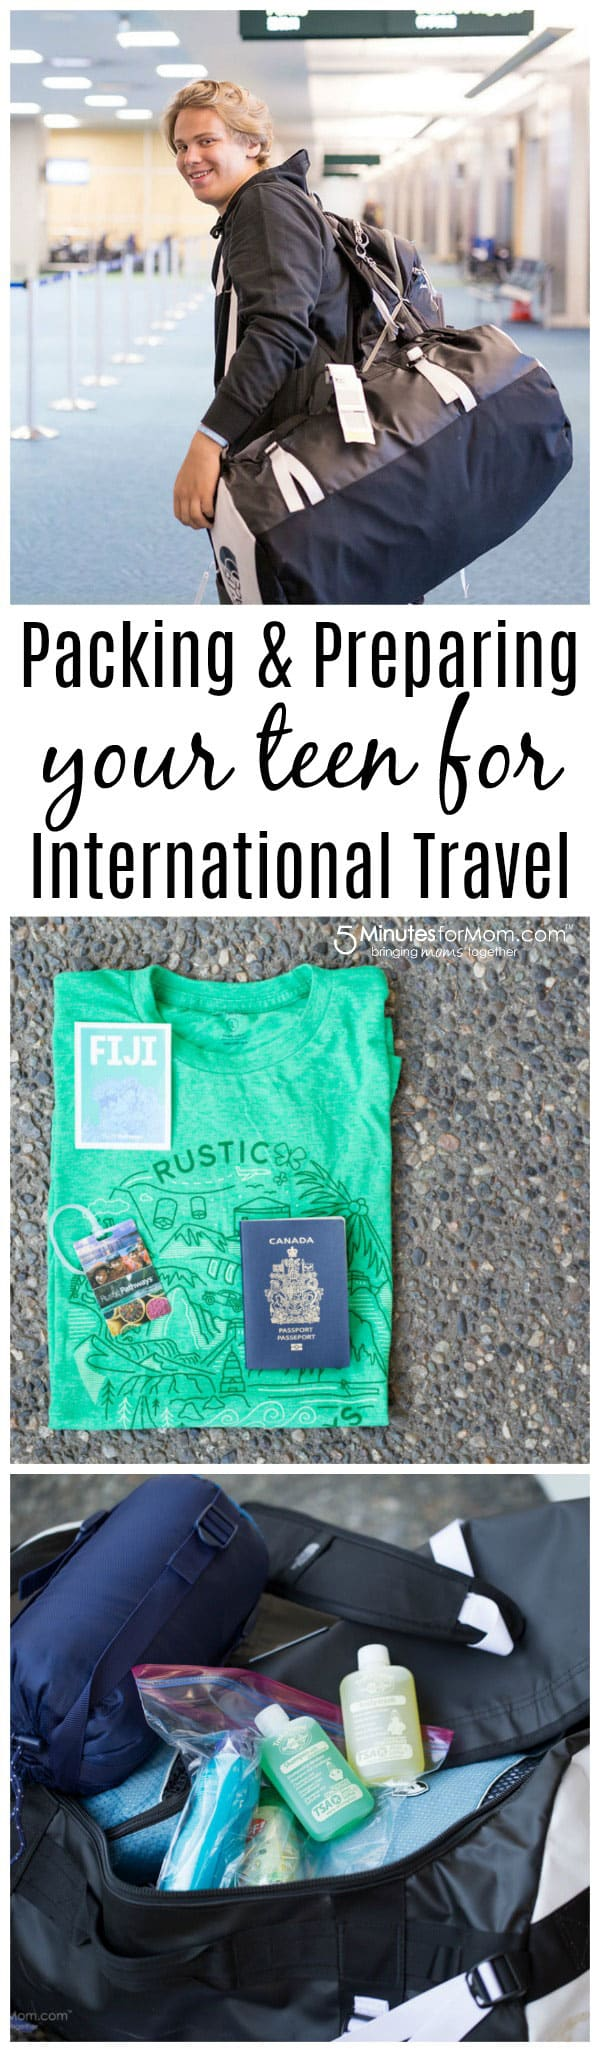 Packing and Preparing Teens for International Travel